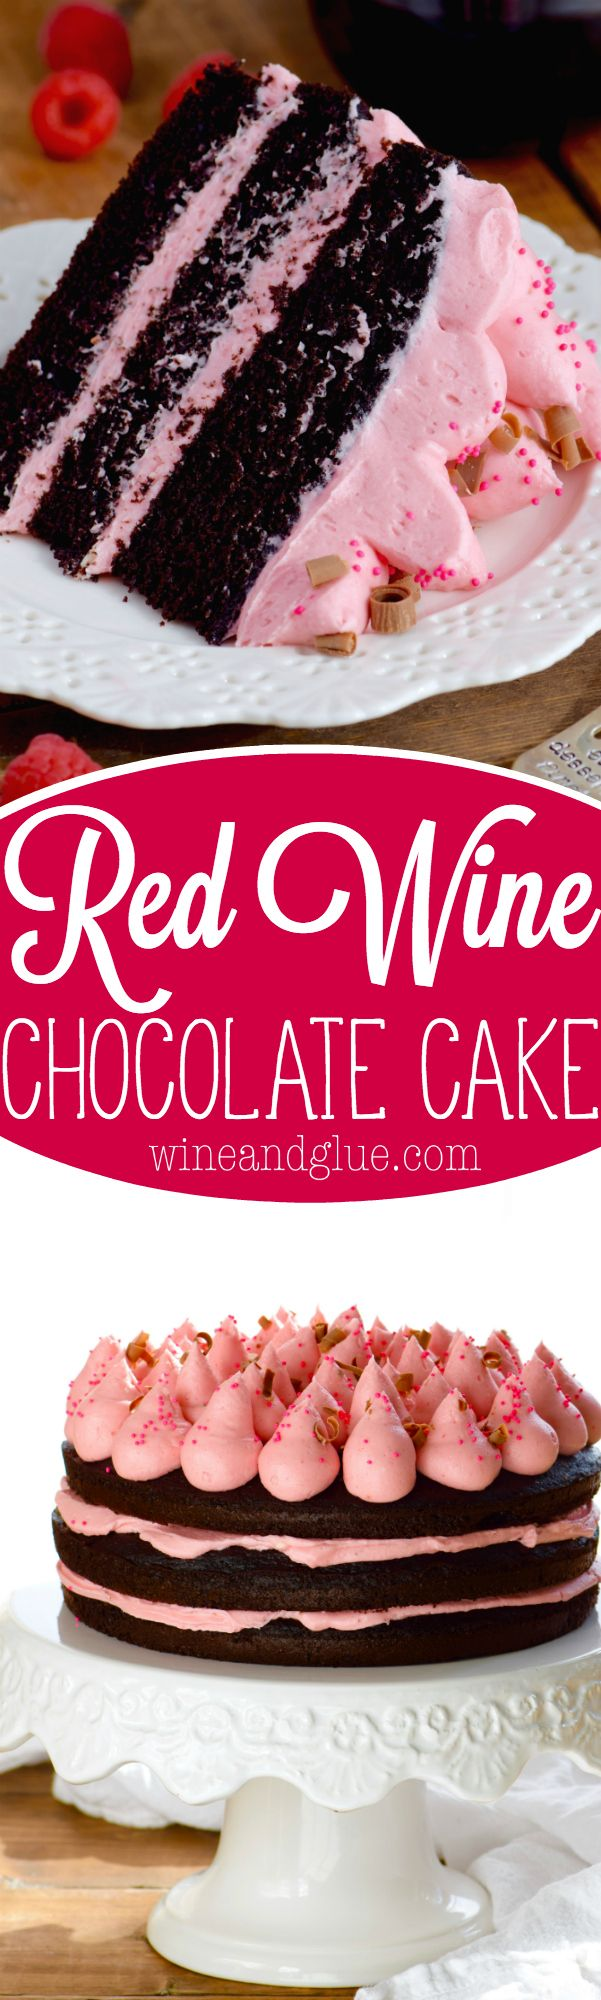 This Red Wine Chocolate is deep, delicious, rich and perfect to entertain with!: